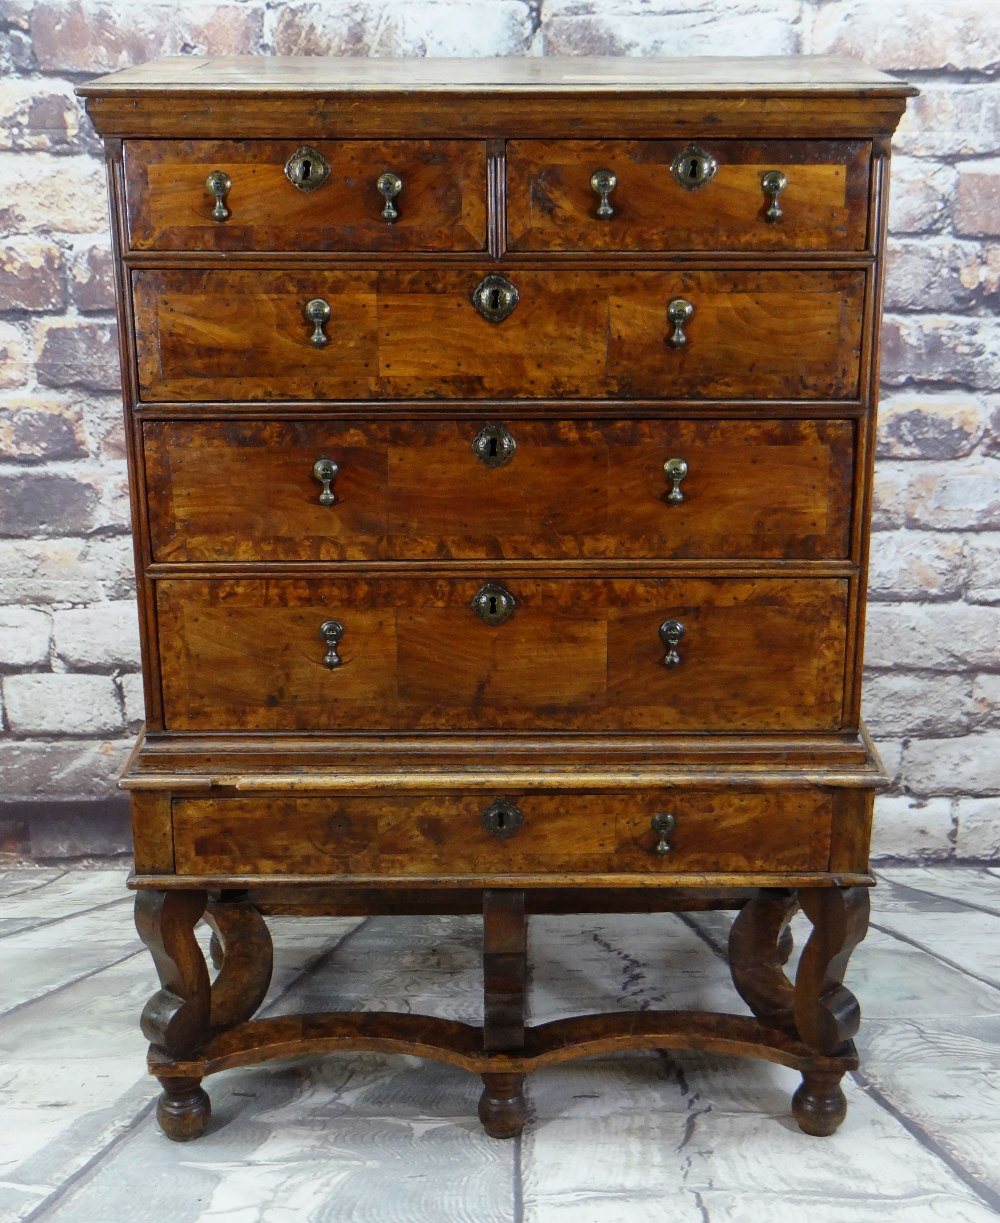 QUEEN ANNE WALNUT & BURR WALNUT CROSSBANDED CHEST ON STAND, veneered top and cornice above two short